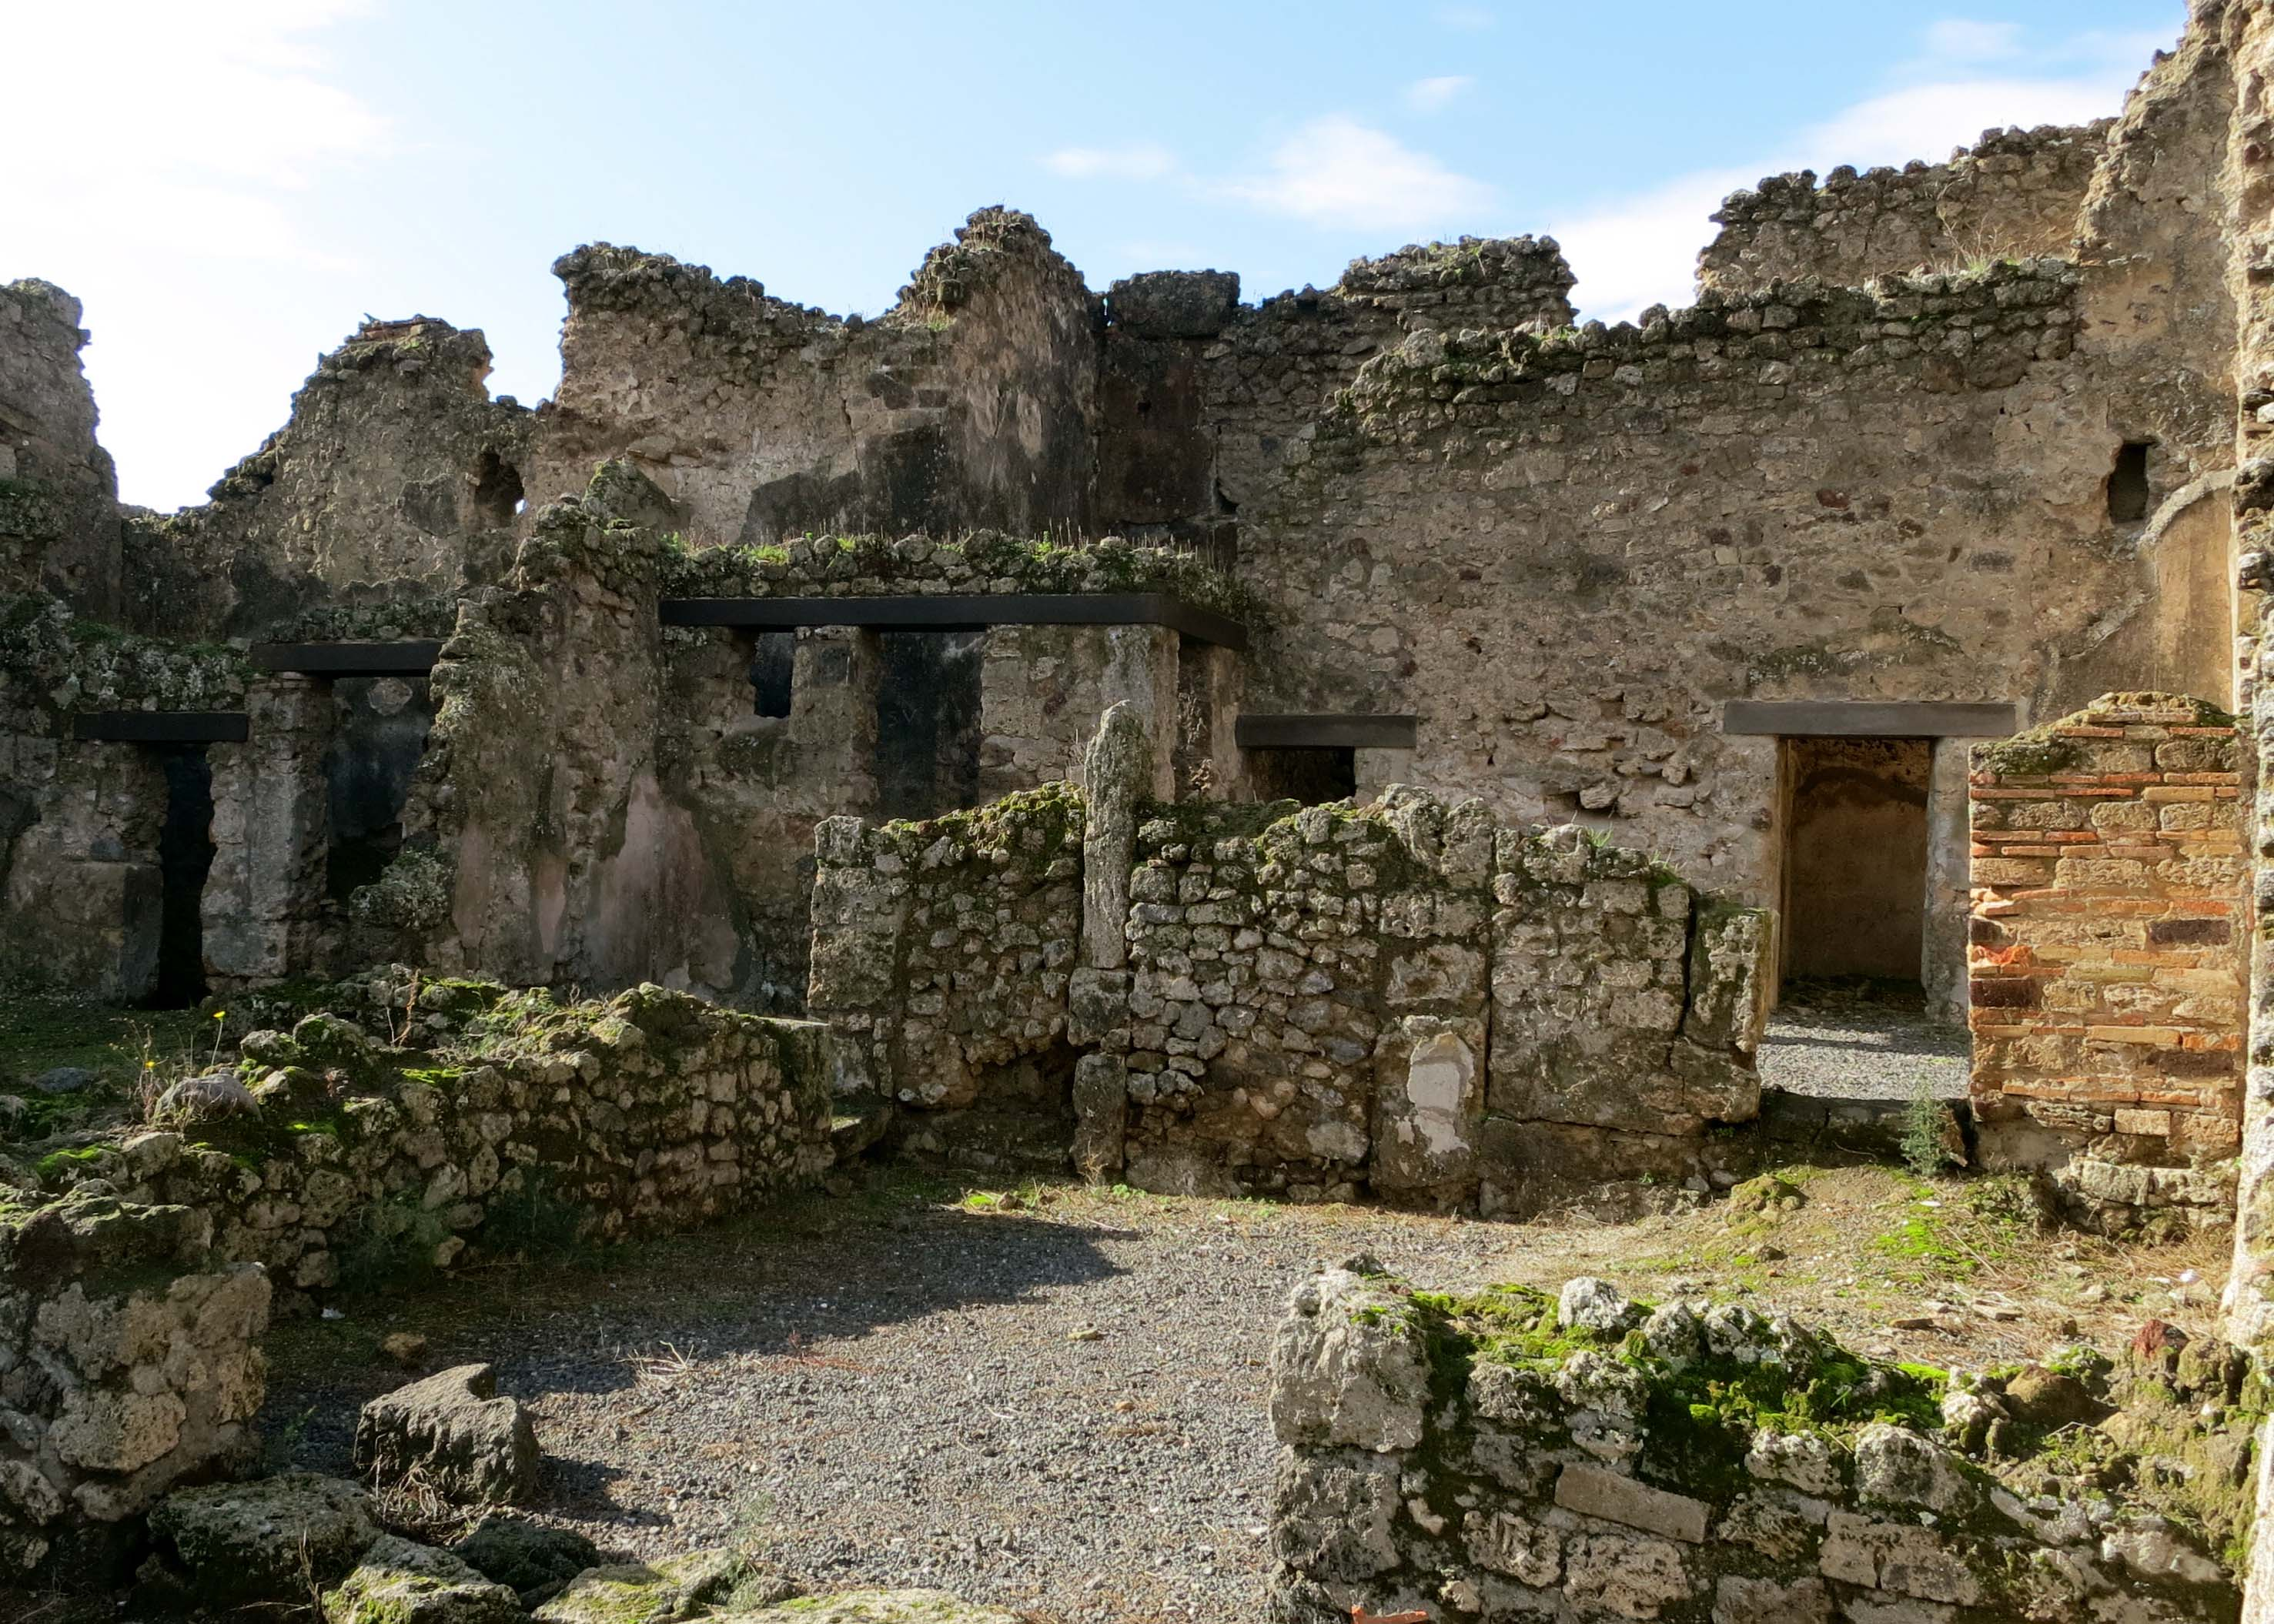 I'll close with this shot of Pompeii ruins looking more like ruins. (grin)